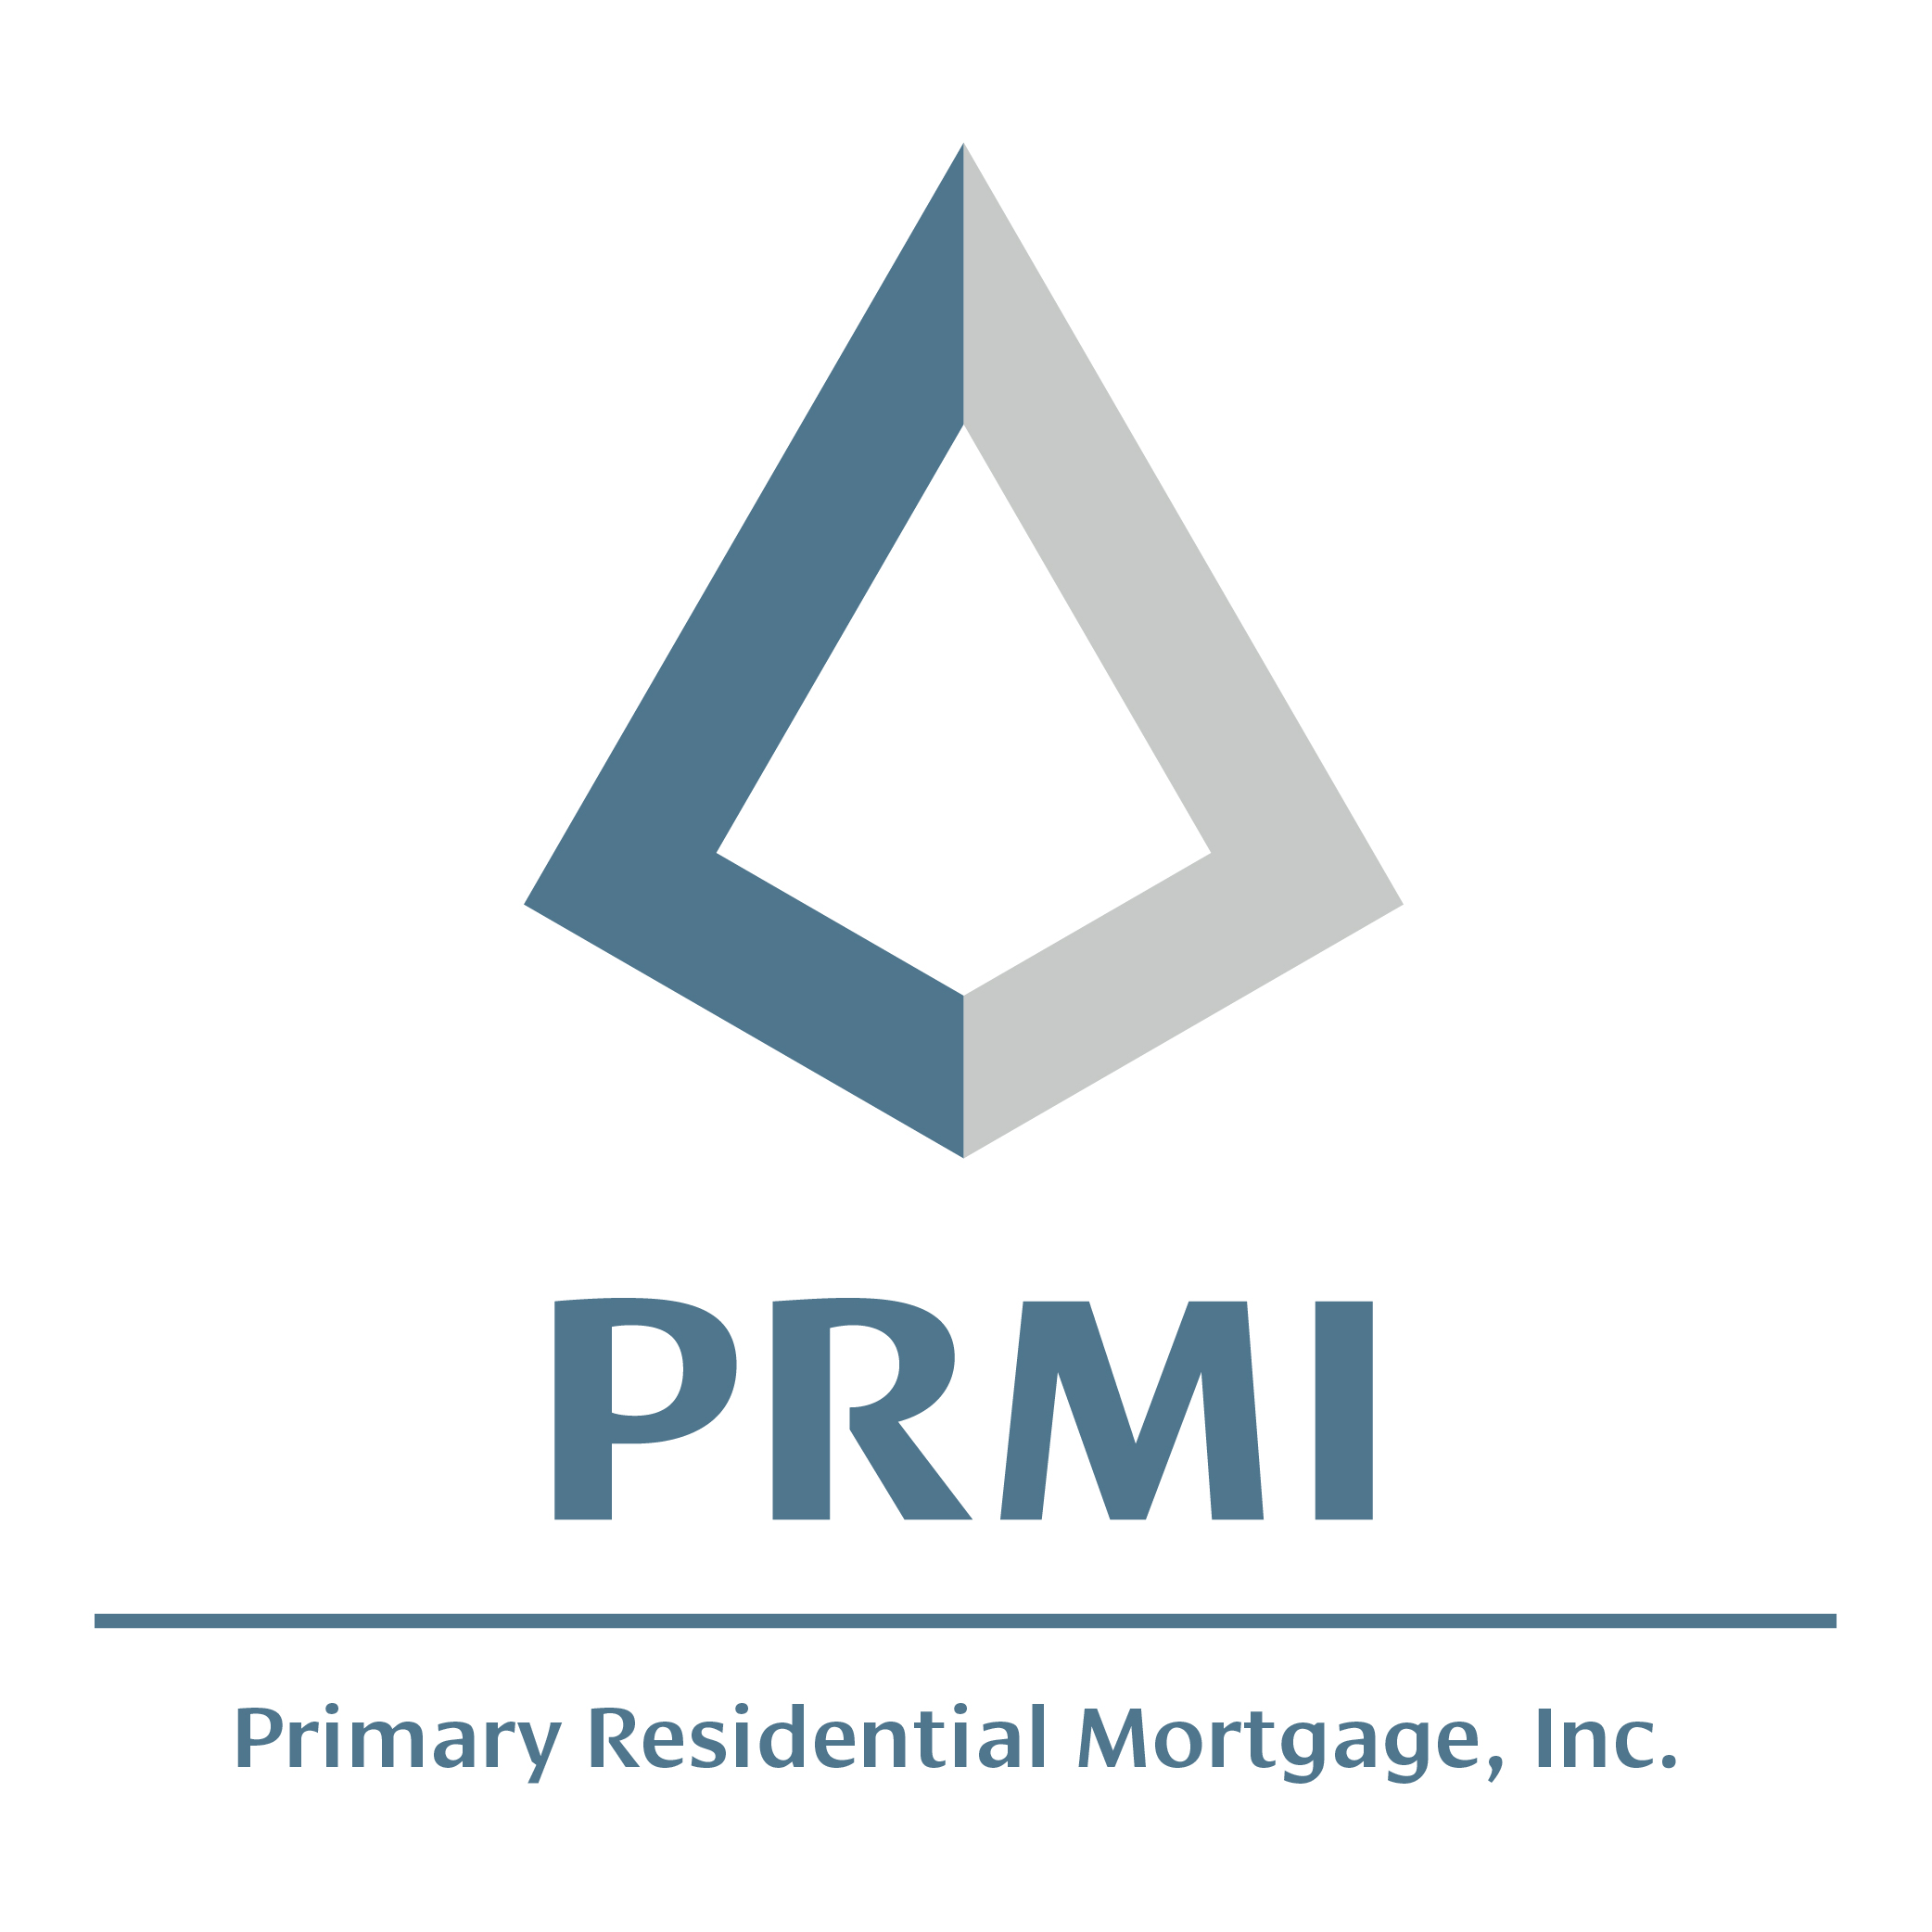 Primary Residential Mortgage, Inc. - Nampa, ID 83651 - (208)202-2019 | ShowMeLocal.com